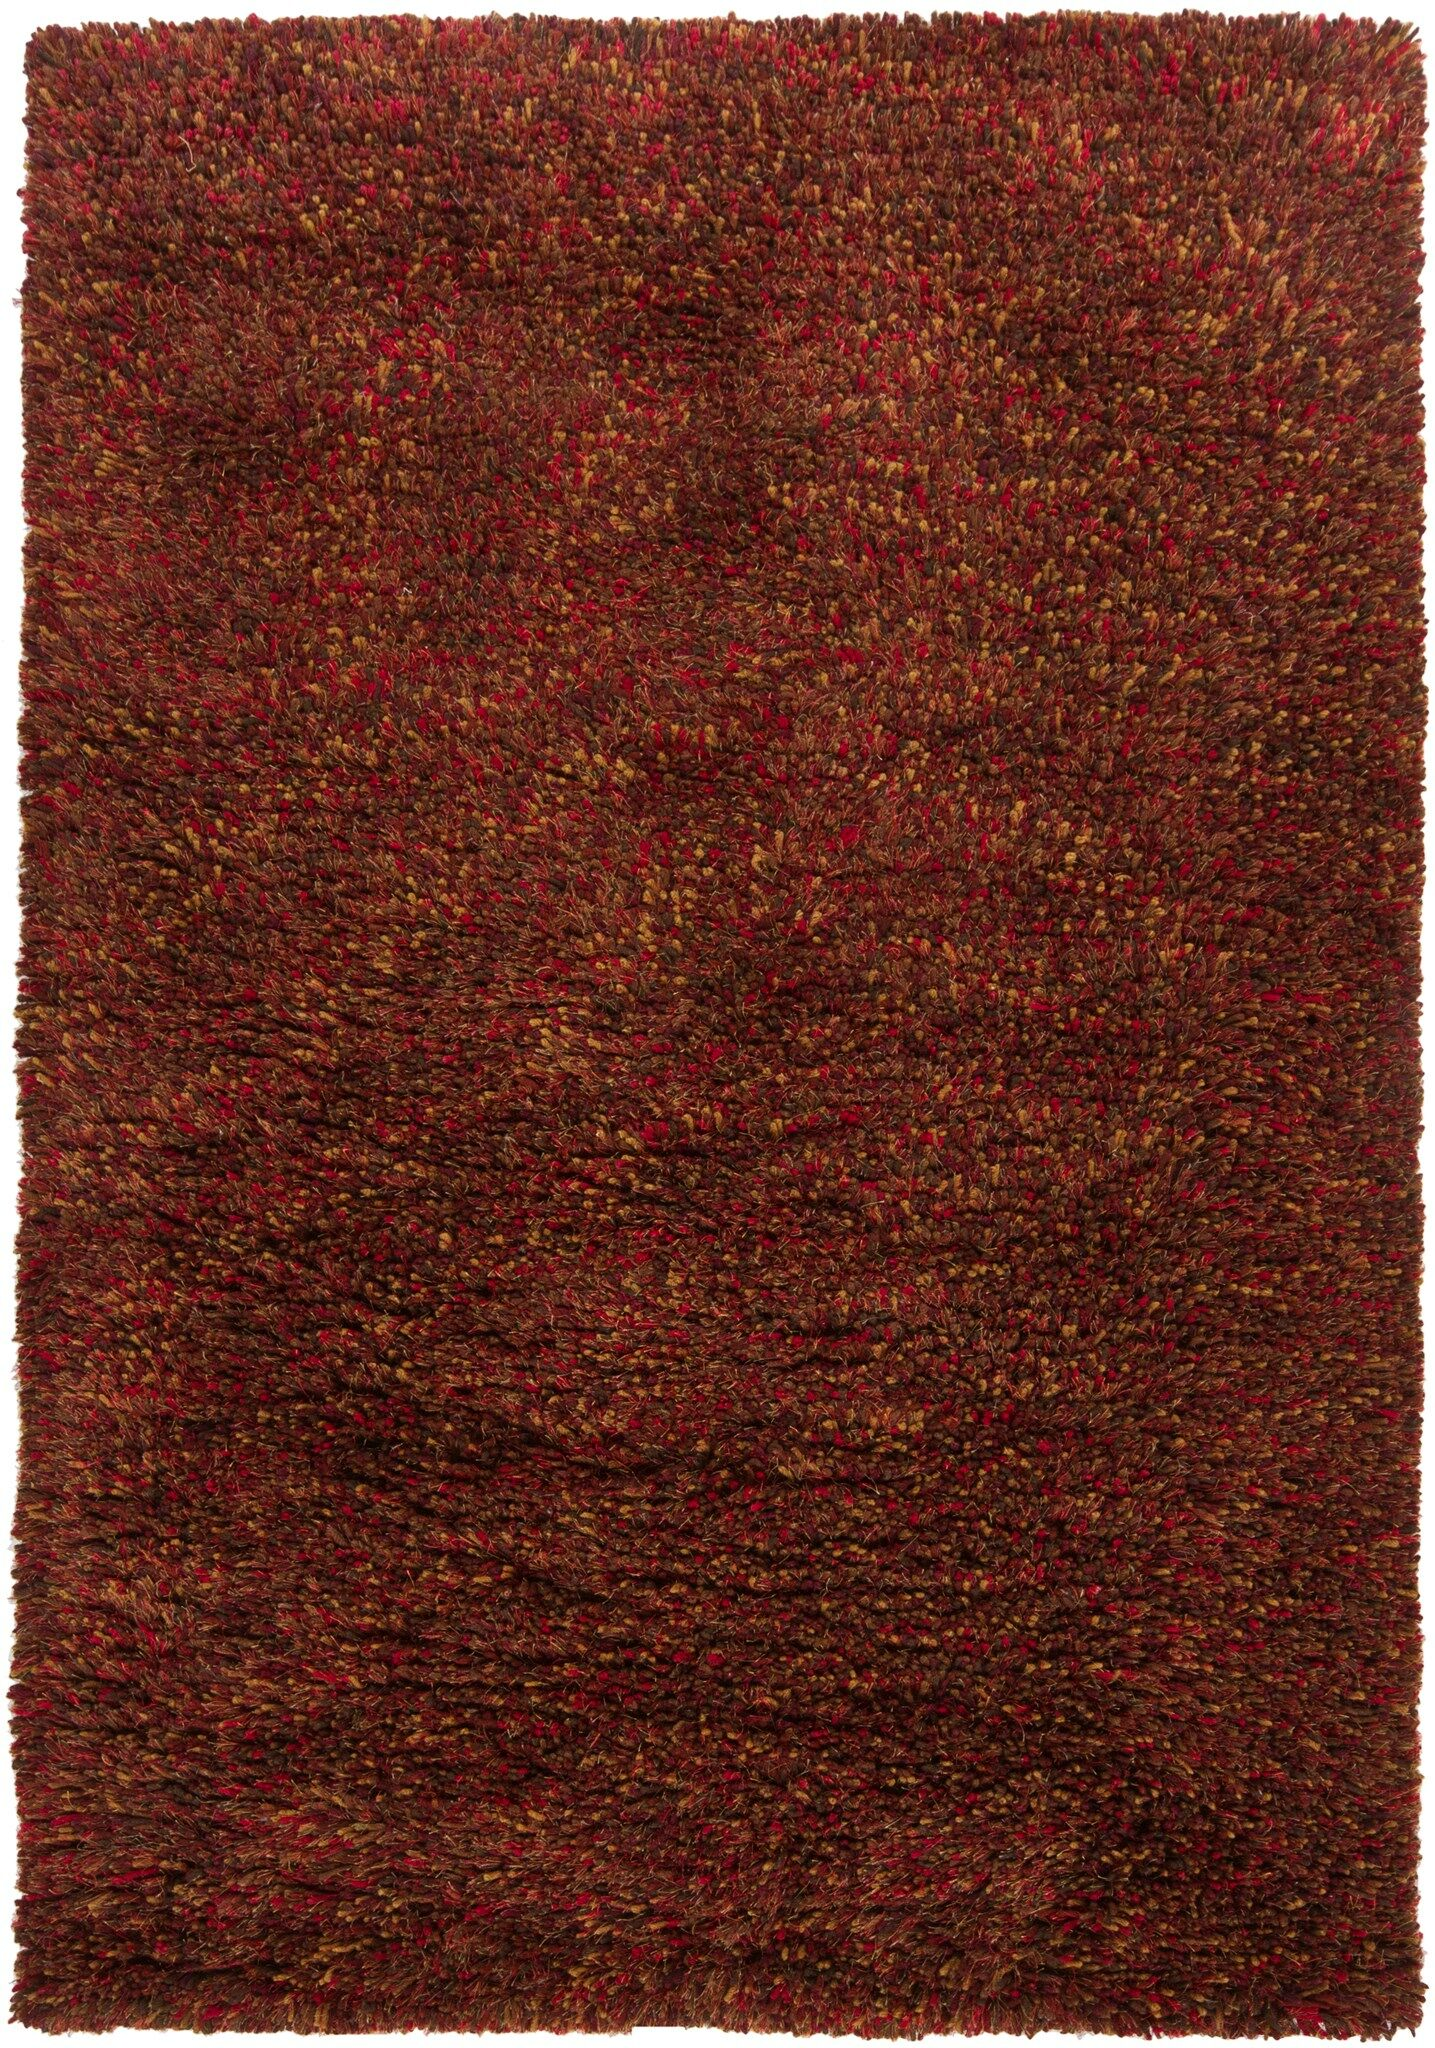 Aviles Red Area Rug Rug Size: Rectangle 7'9